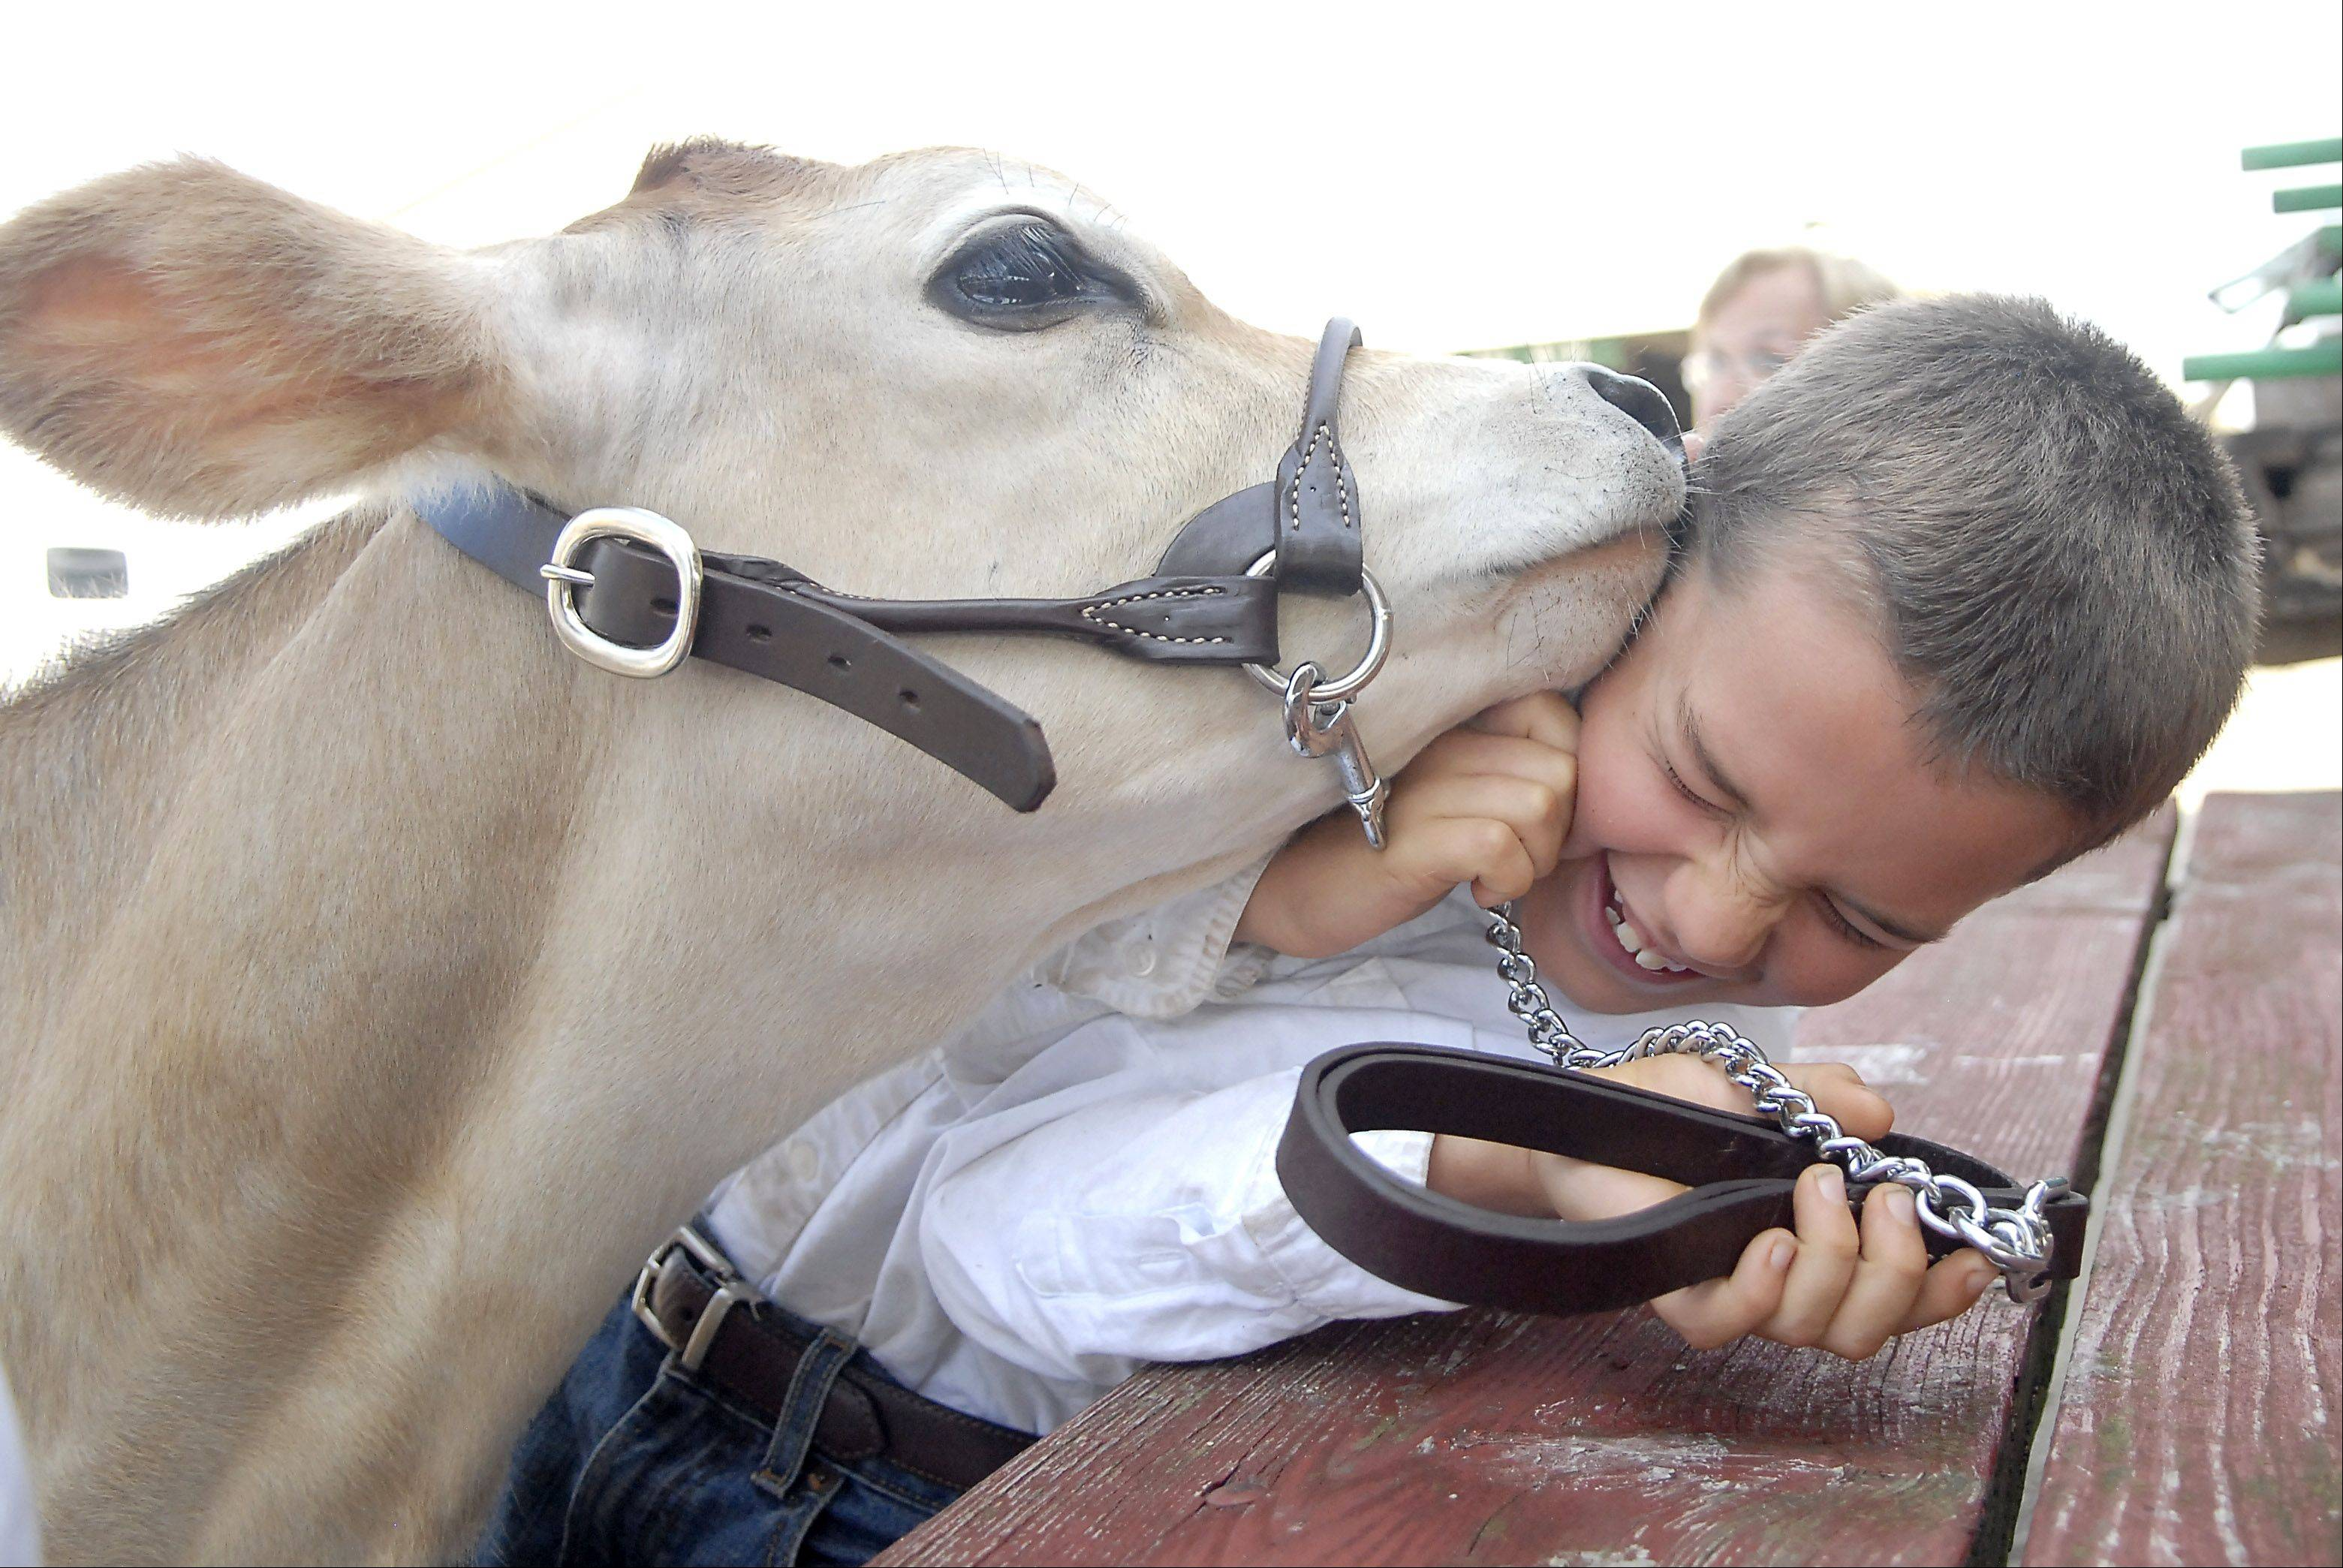 "Paden Thompson, 8, of St. Charles, gets smothered with kisses from four-month-old Jersey calf, Peanut, while they wait for their turn to show in the Jersey Junior Hefer category at the Kane County Fair on Thursday, July 19. Peanut's sandpaper-like tongue left Paden's cheek a rosy color afterward. Peanut and her sister, Clover, are calves from Primrose Farm in St. Charles. Paden and his sister, Emily, 11, are volunteers and have taken care of the calves ever since they were born. Peanut happened to be born on Paden's birthday. ""I just like sitting with them and working with them,"" says Paden. The 4-H program at Primrose Farm gets suburban kids who don't live on a farm a chance to be involved in the farm program."